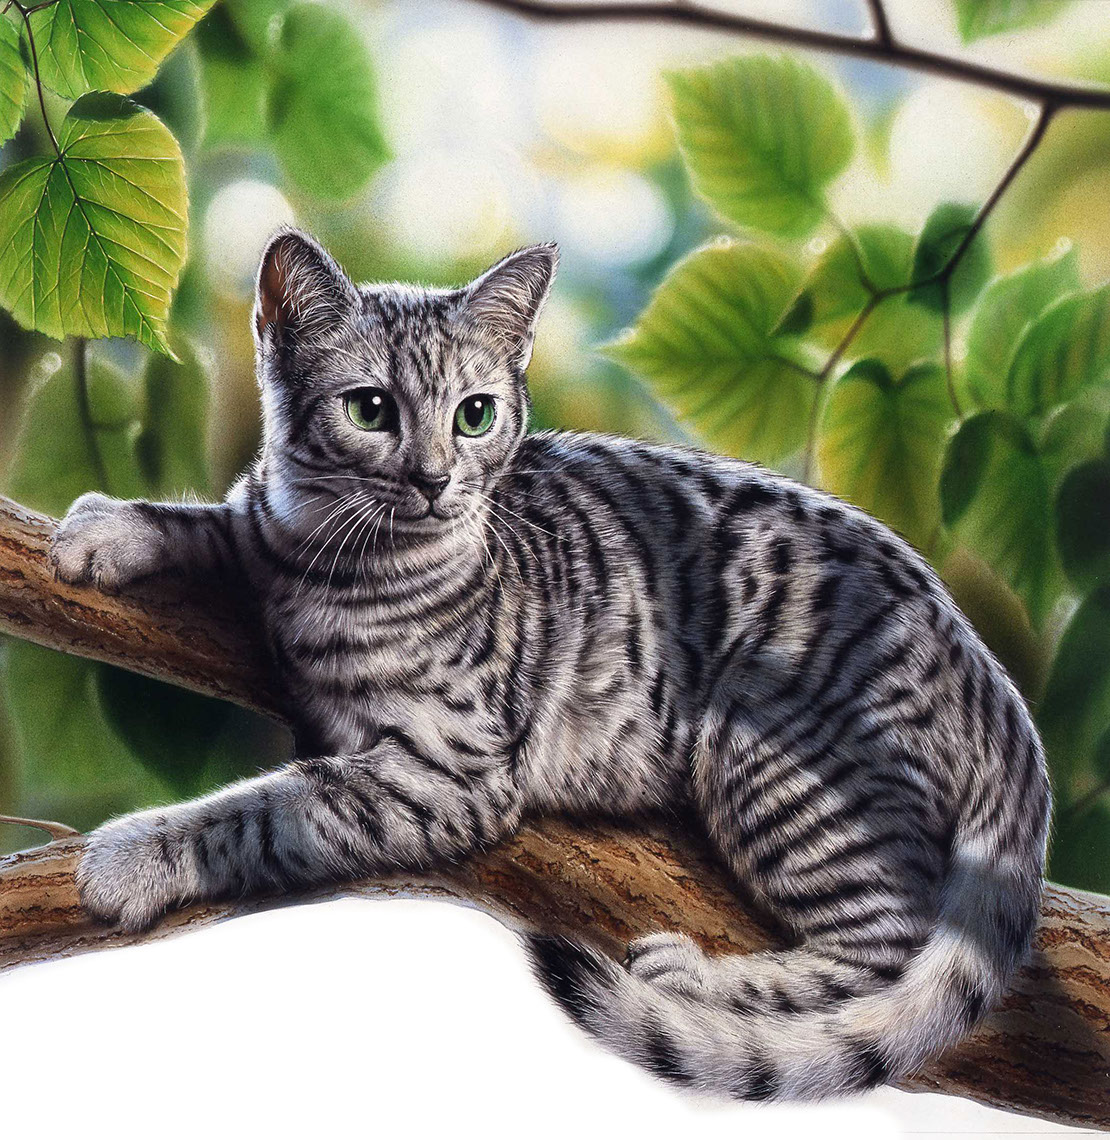 Photo-Imaging_Animals and Nature_Cat in a tree-Frank Neidhardt